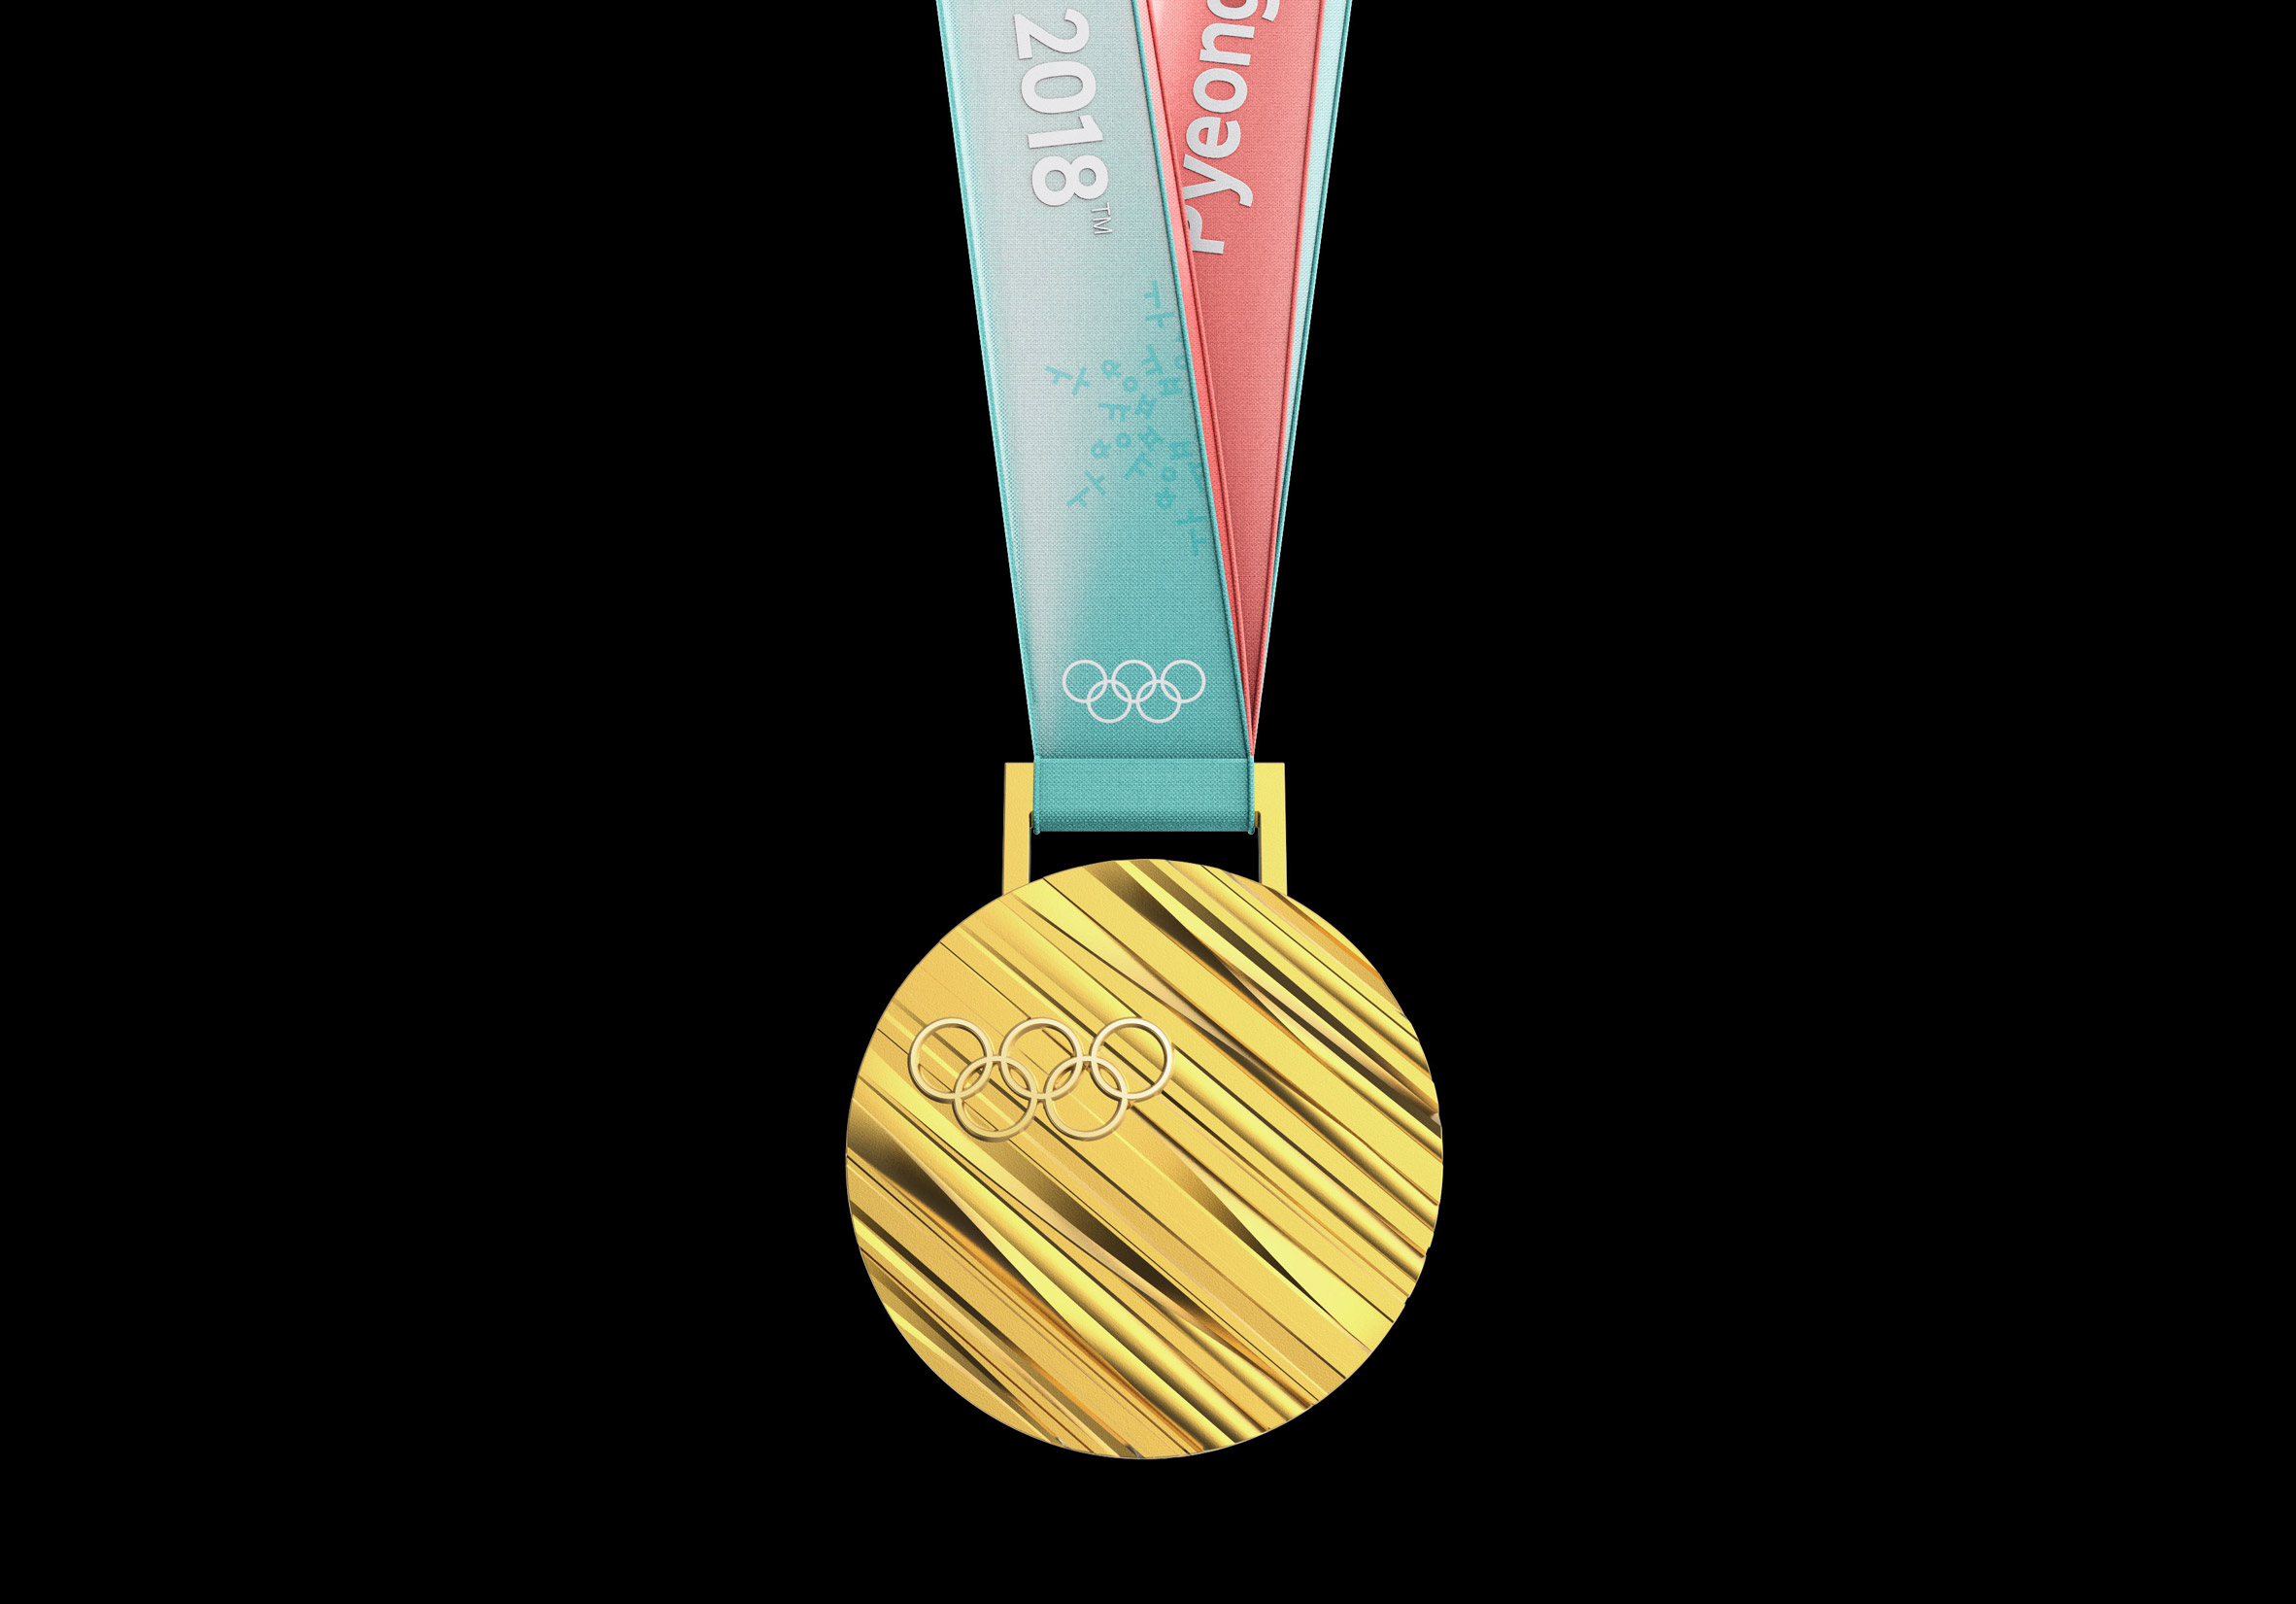 Medals for 2018 Winter Olympics are based on Korean alphabet